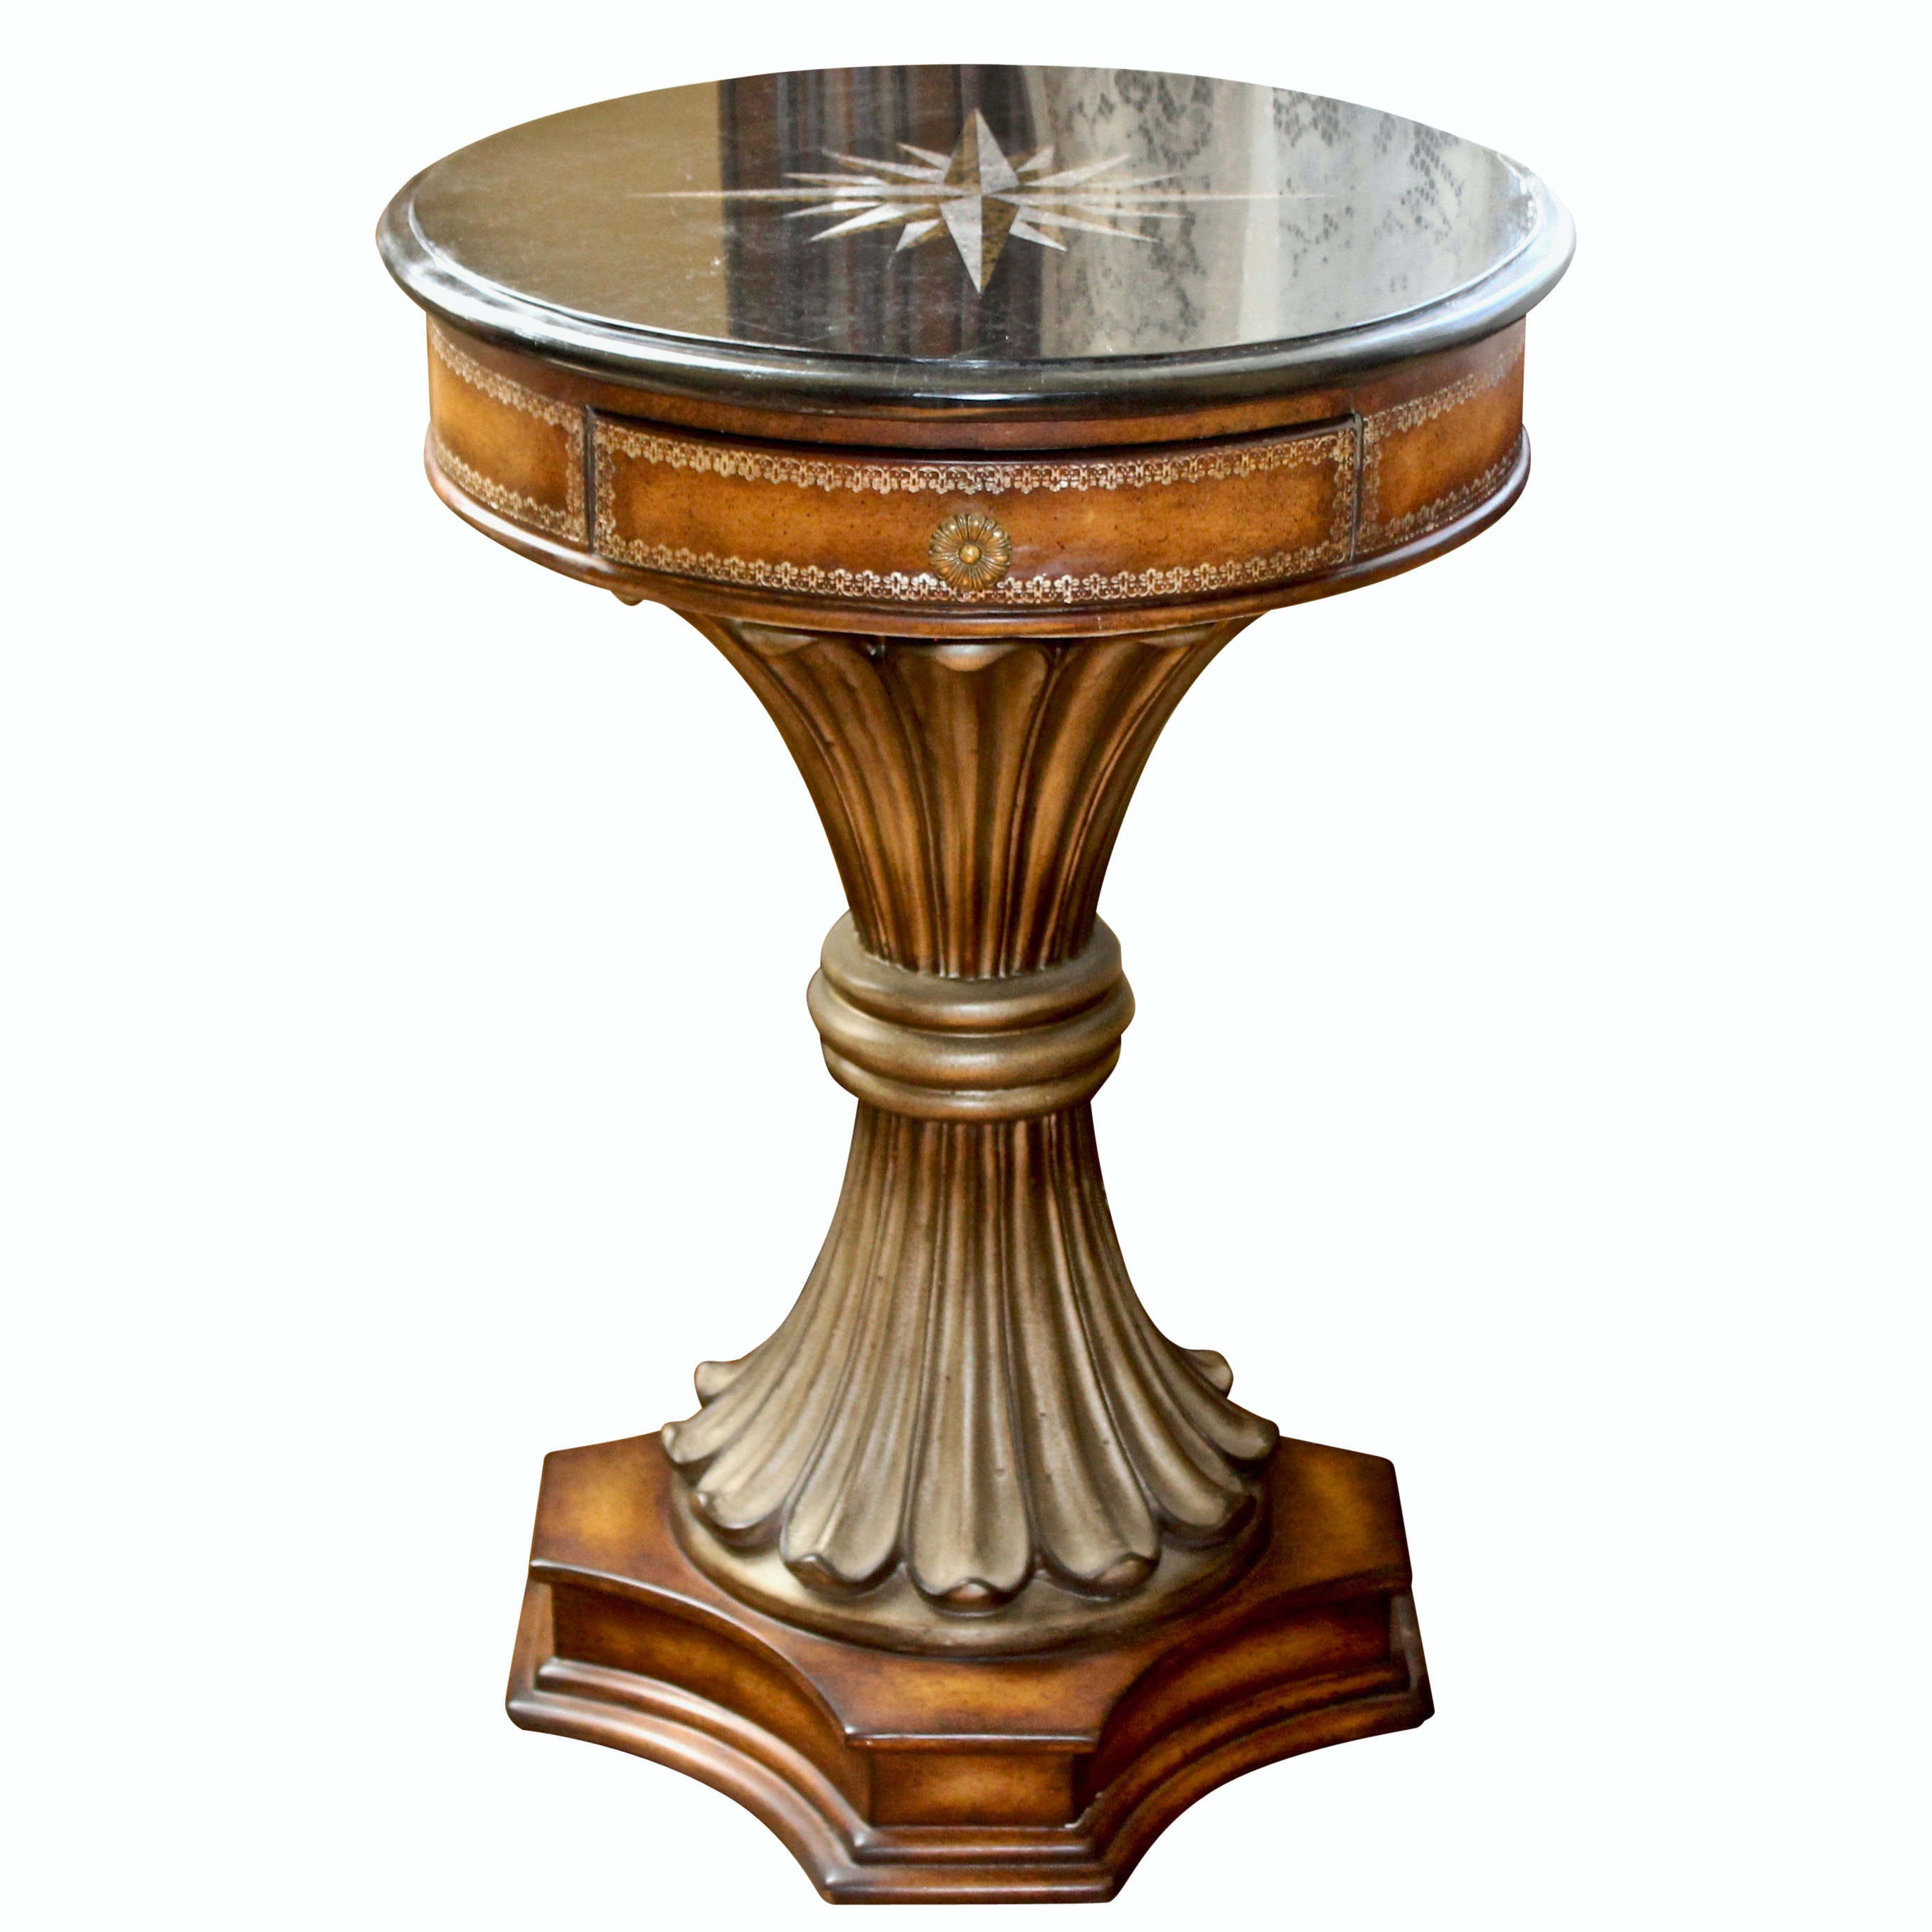 Vintage Wooden Round Accent Table